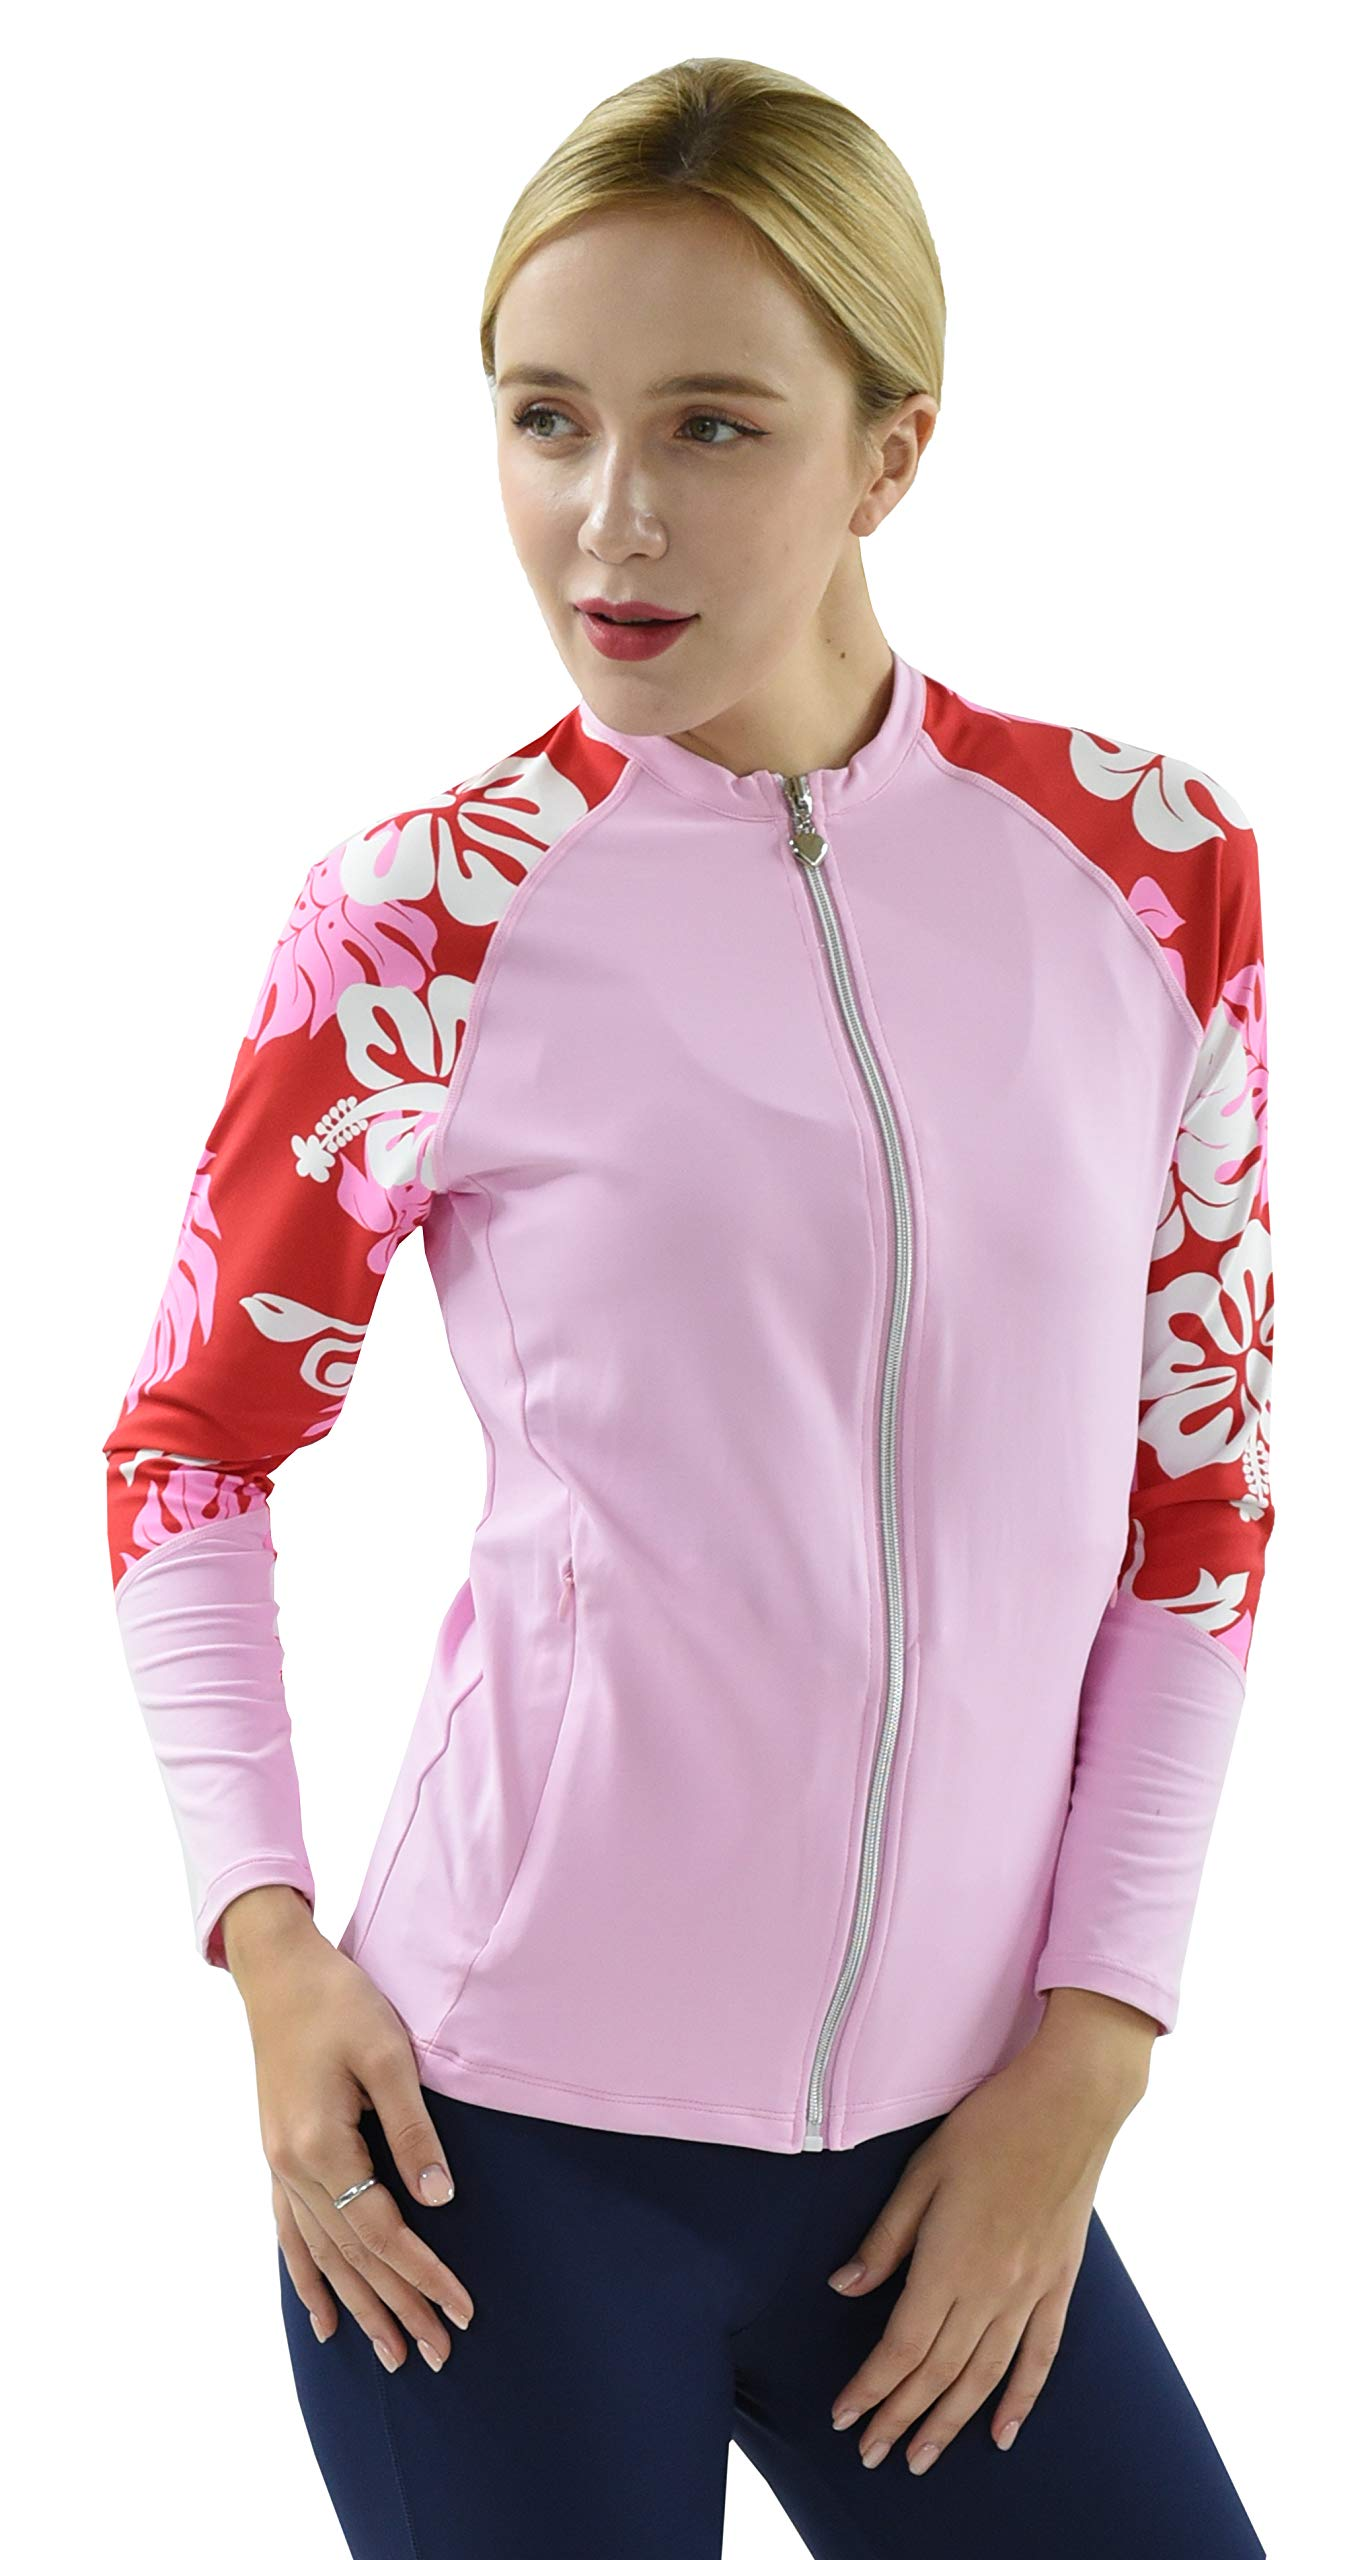 Private Island Hawaii UV Women Rash Guard Zip Up Long Sleeve Yoga Active Workout (S, PwRW-JRSRGT) by Private Island